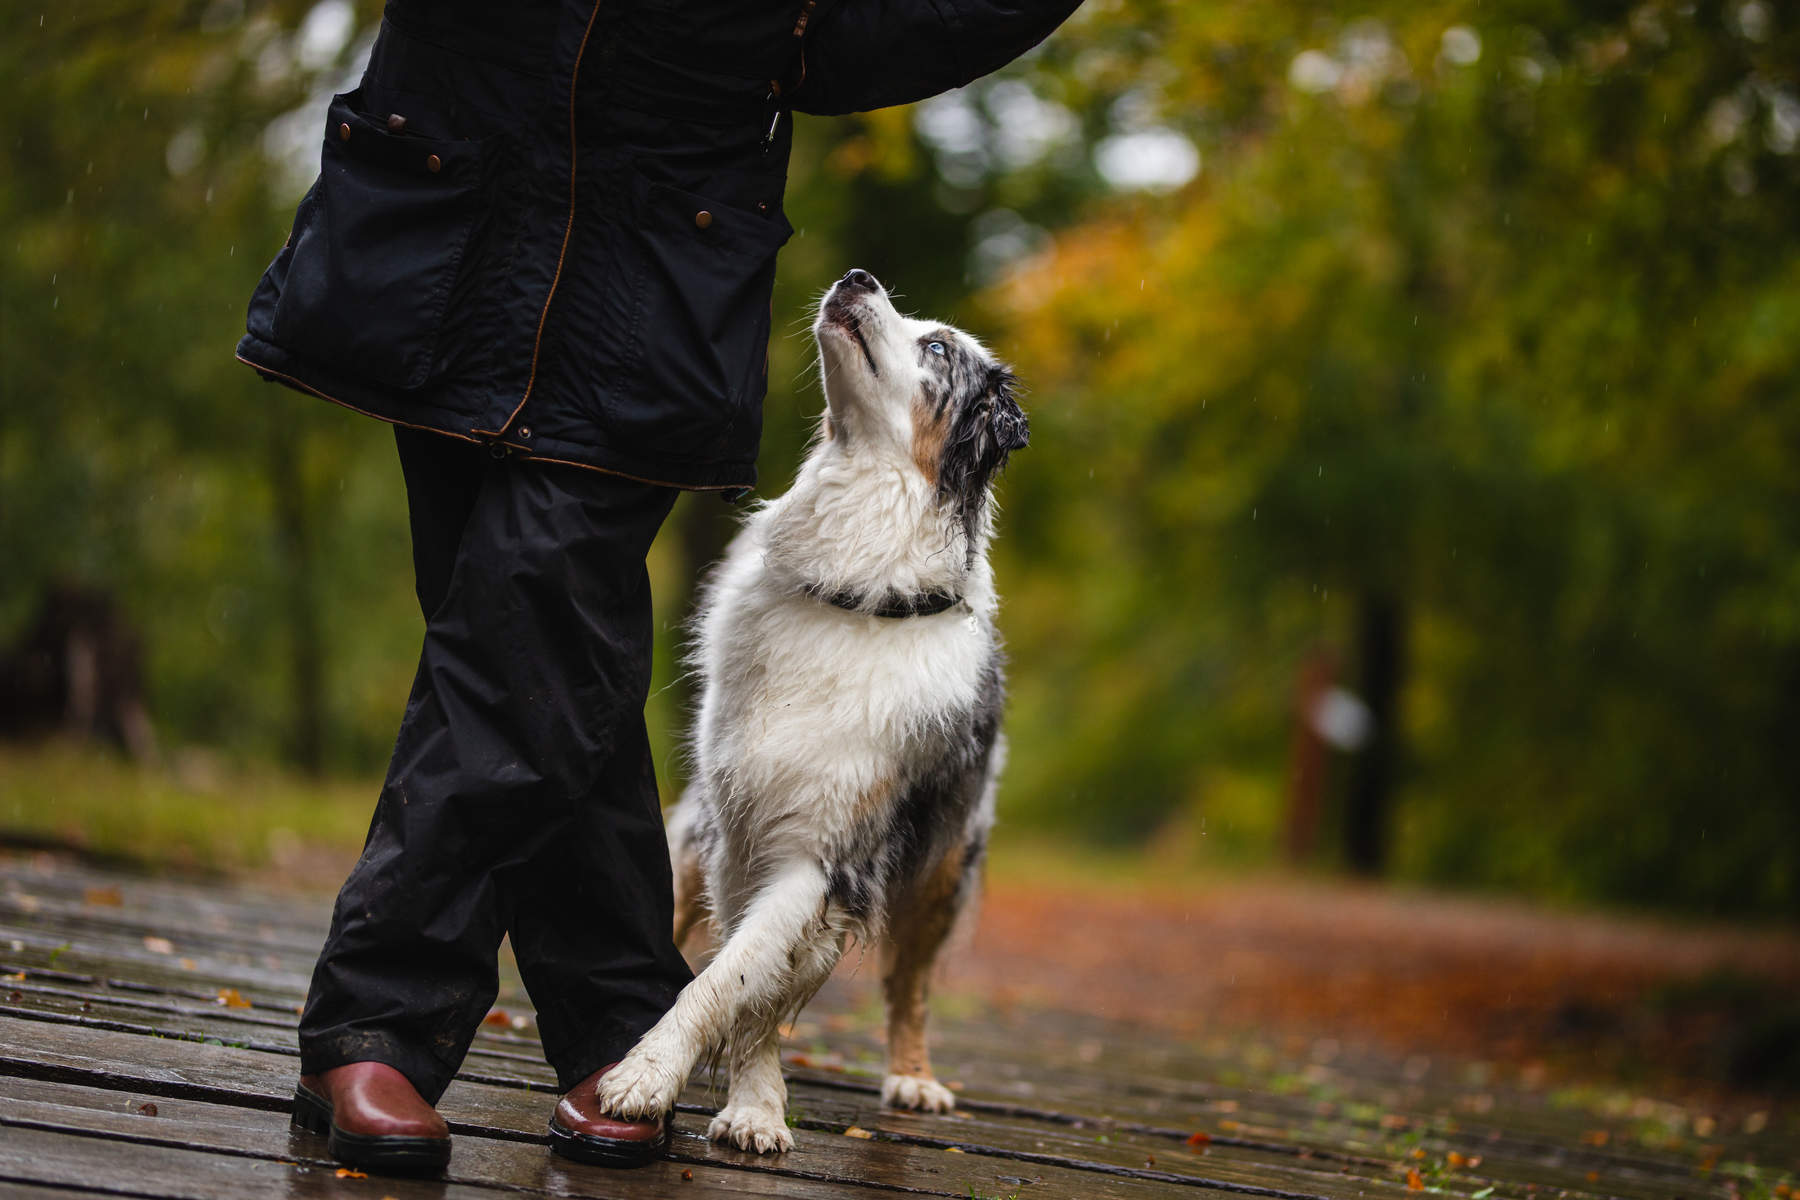 behind-the-scenes-Alicja-Zmys-owska-workshop-dog-photography-02